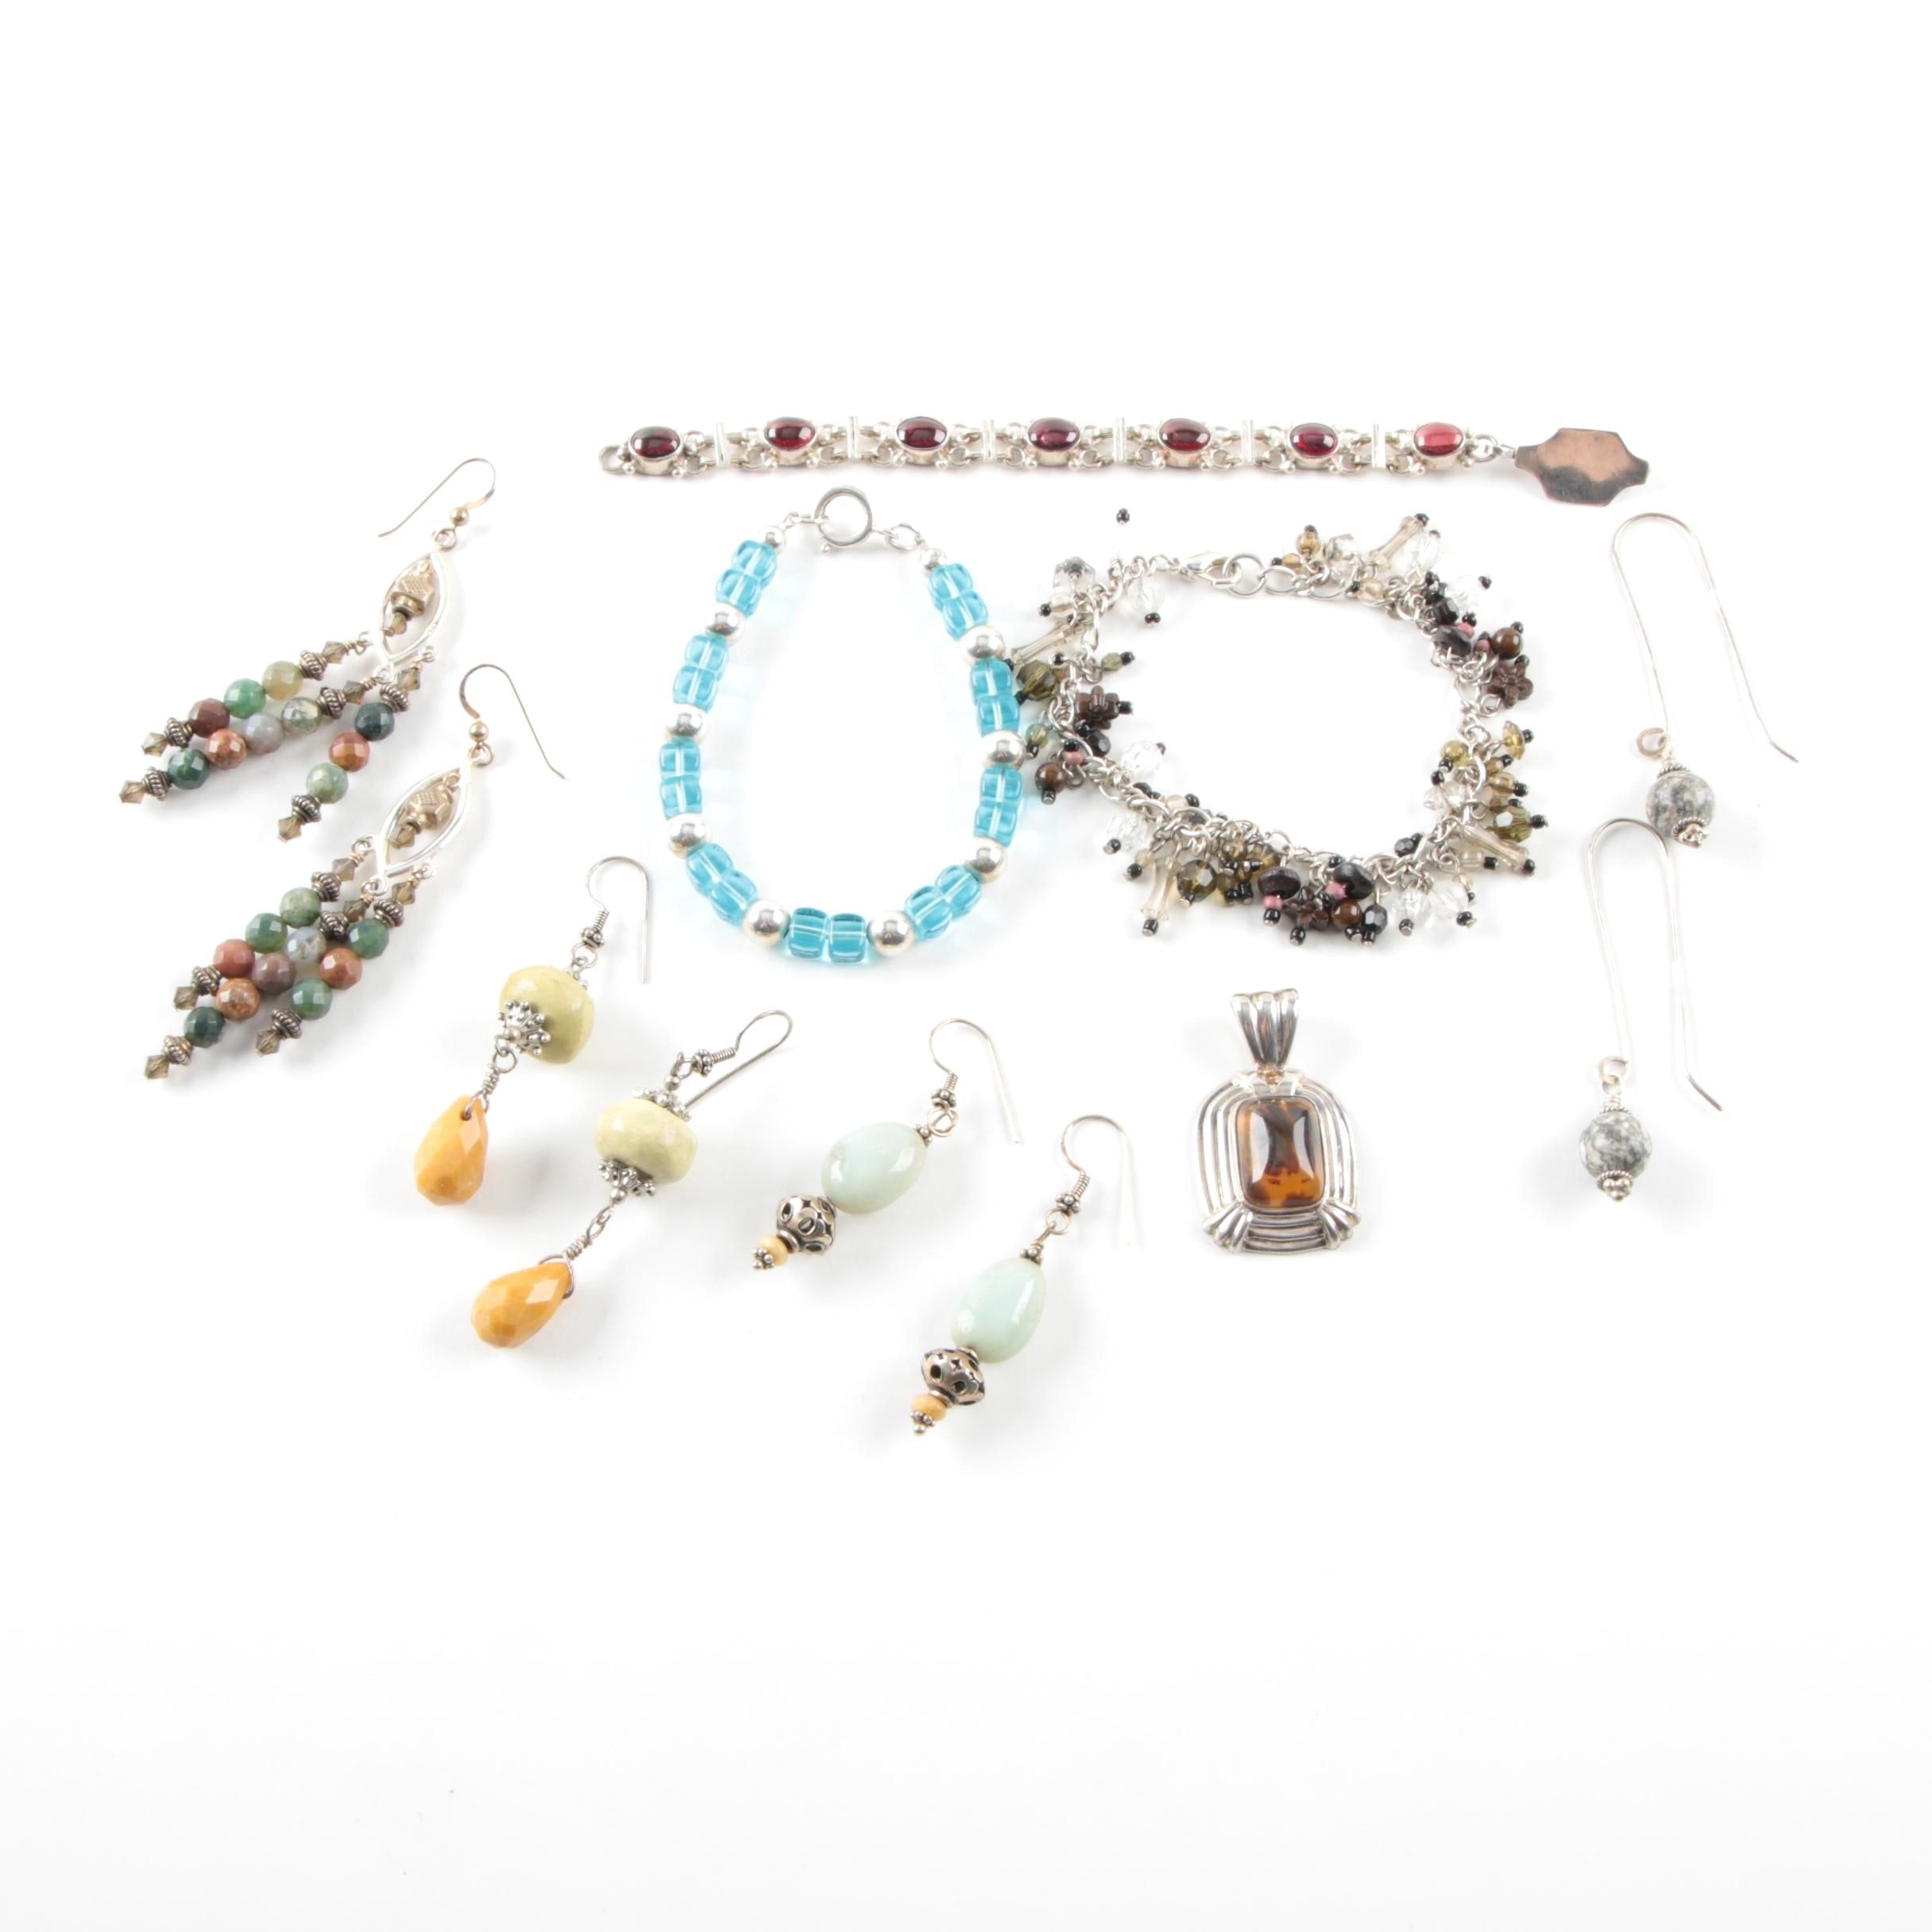 Sterling Silver Jewelry Selection Including Jasper, Agate, and Rhodolite Garnet